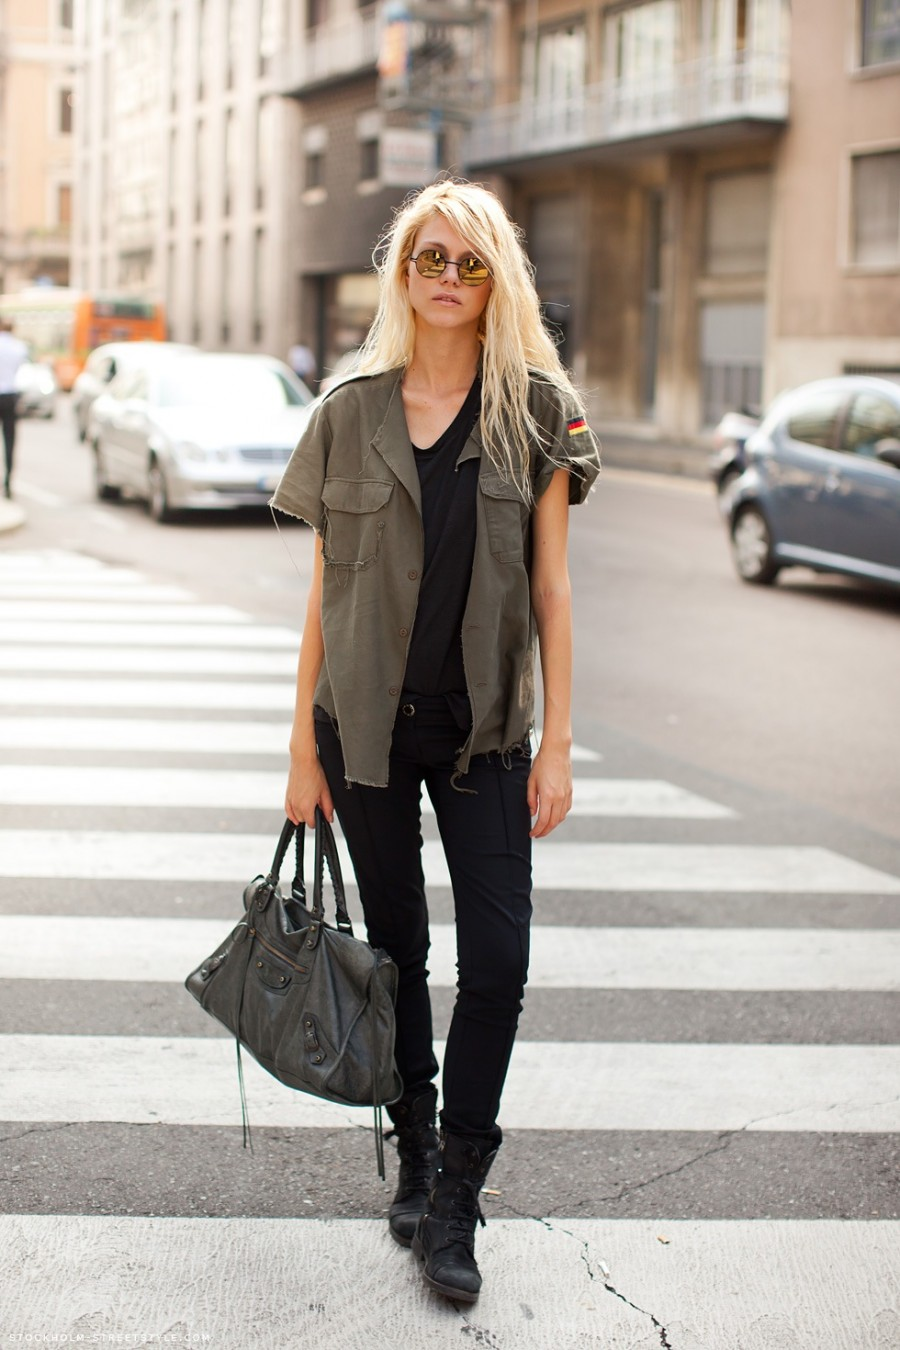 pure street style